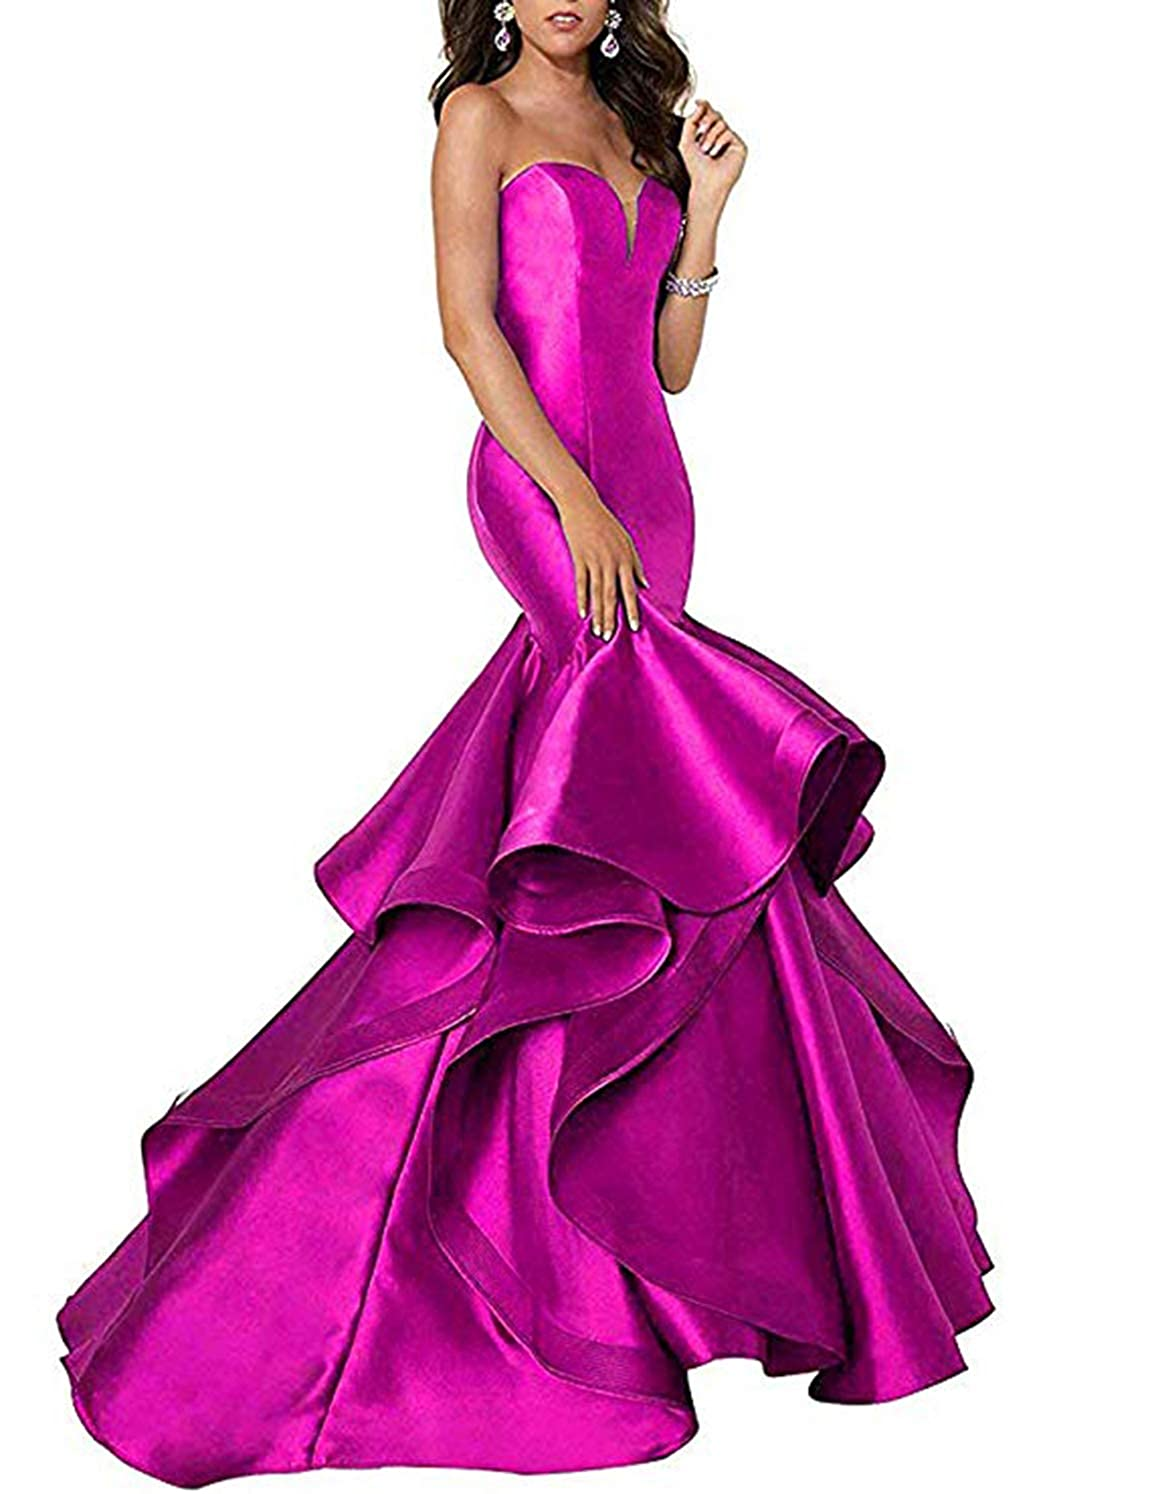 Hot Pink Scarisee Women's Sweetheart Mermaid Prom Evening Party Dresses Tiered FormalSA51